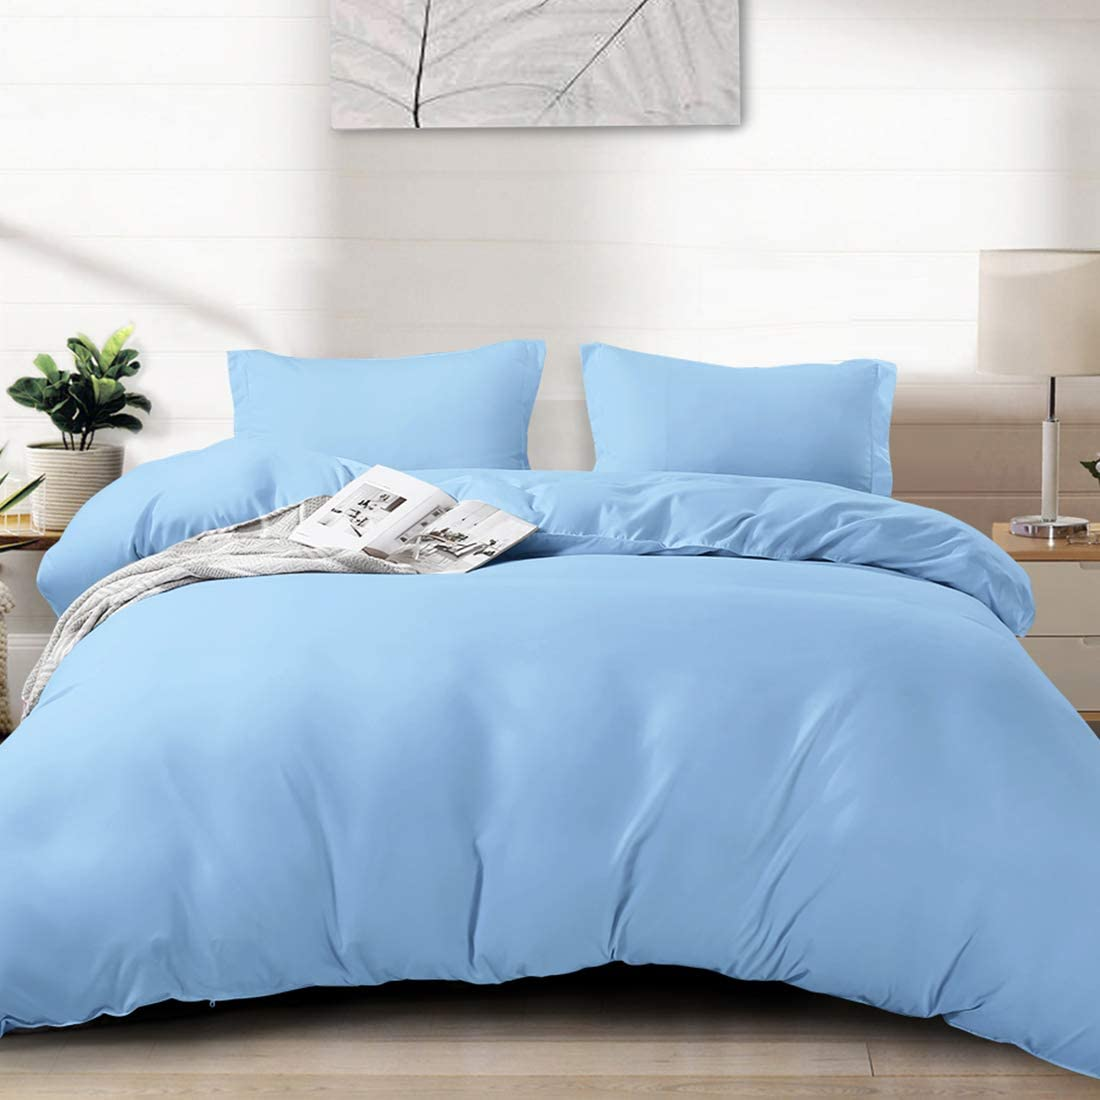 """FAIRYLAND Duvet Cover King, Ultra Soft Double Brushed Microfiber Hotel Bedding Collection with Zipper Closure and Corner Ties and 2 Pillow Shams, King (102"""" 90""""), Sky Blue"""